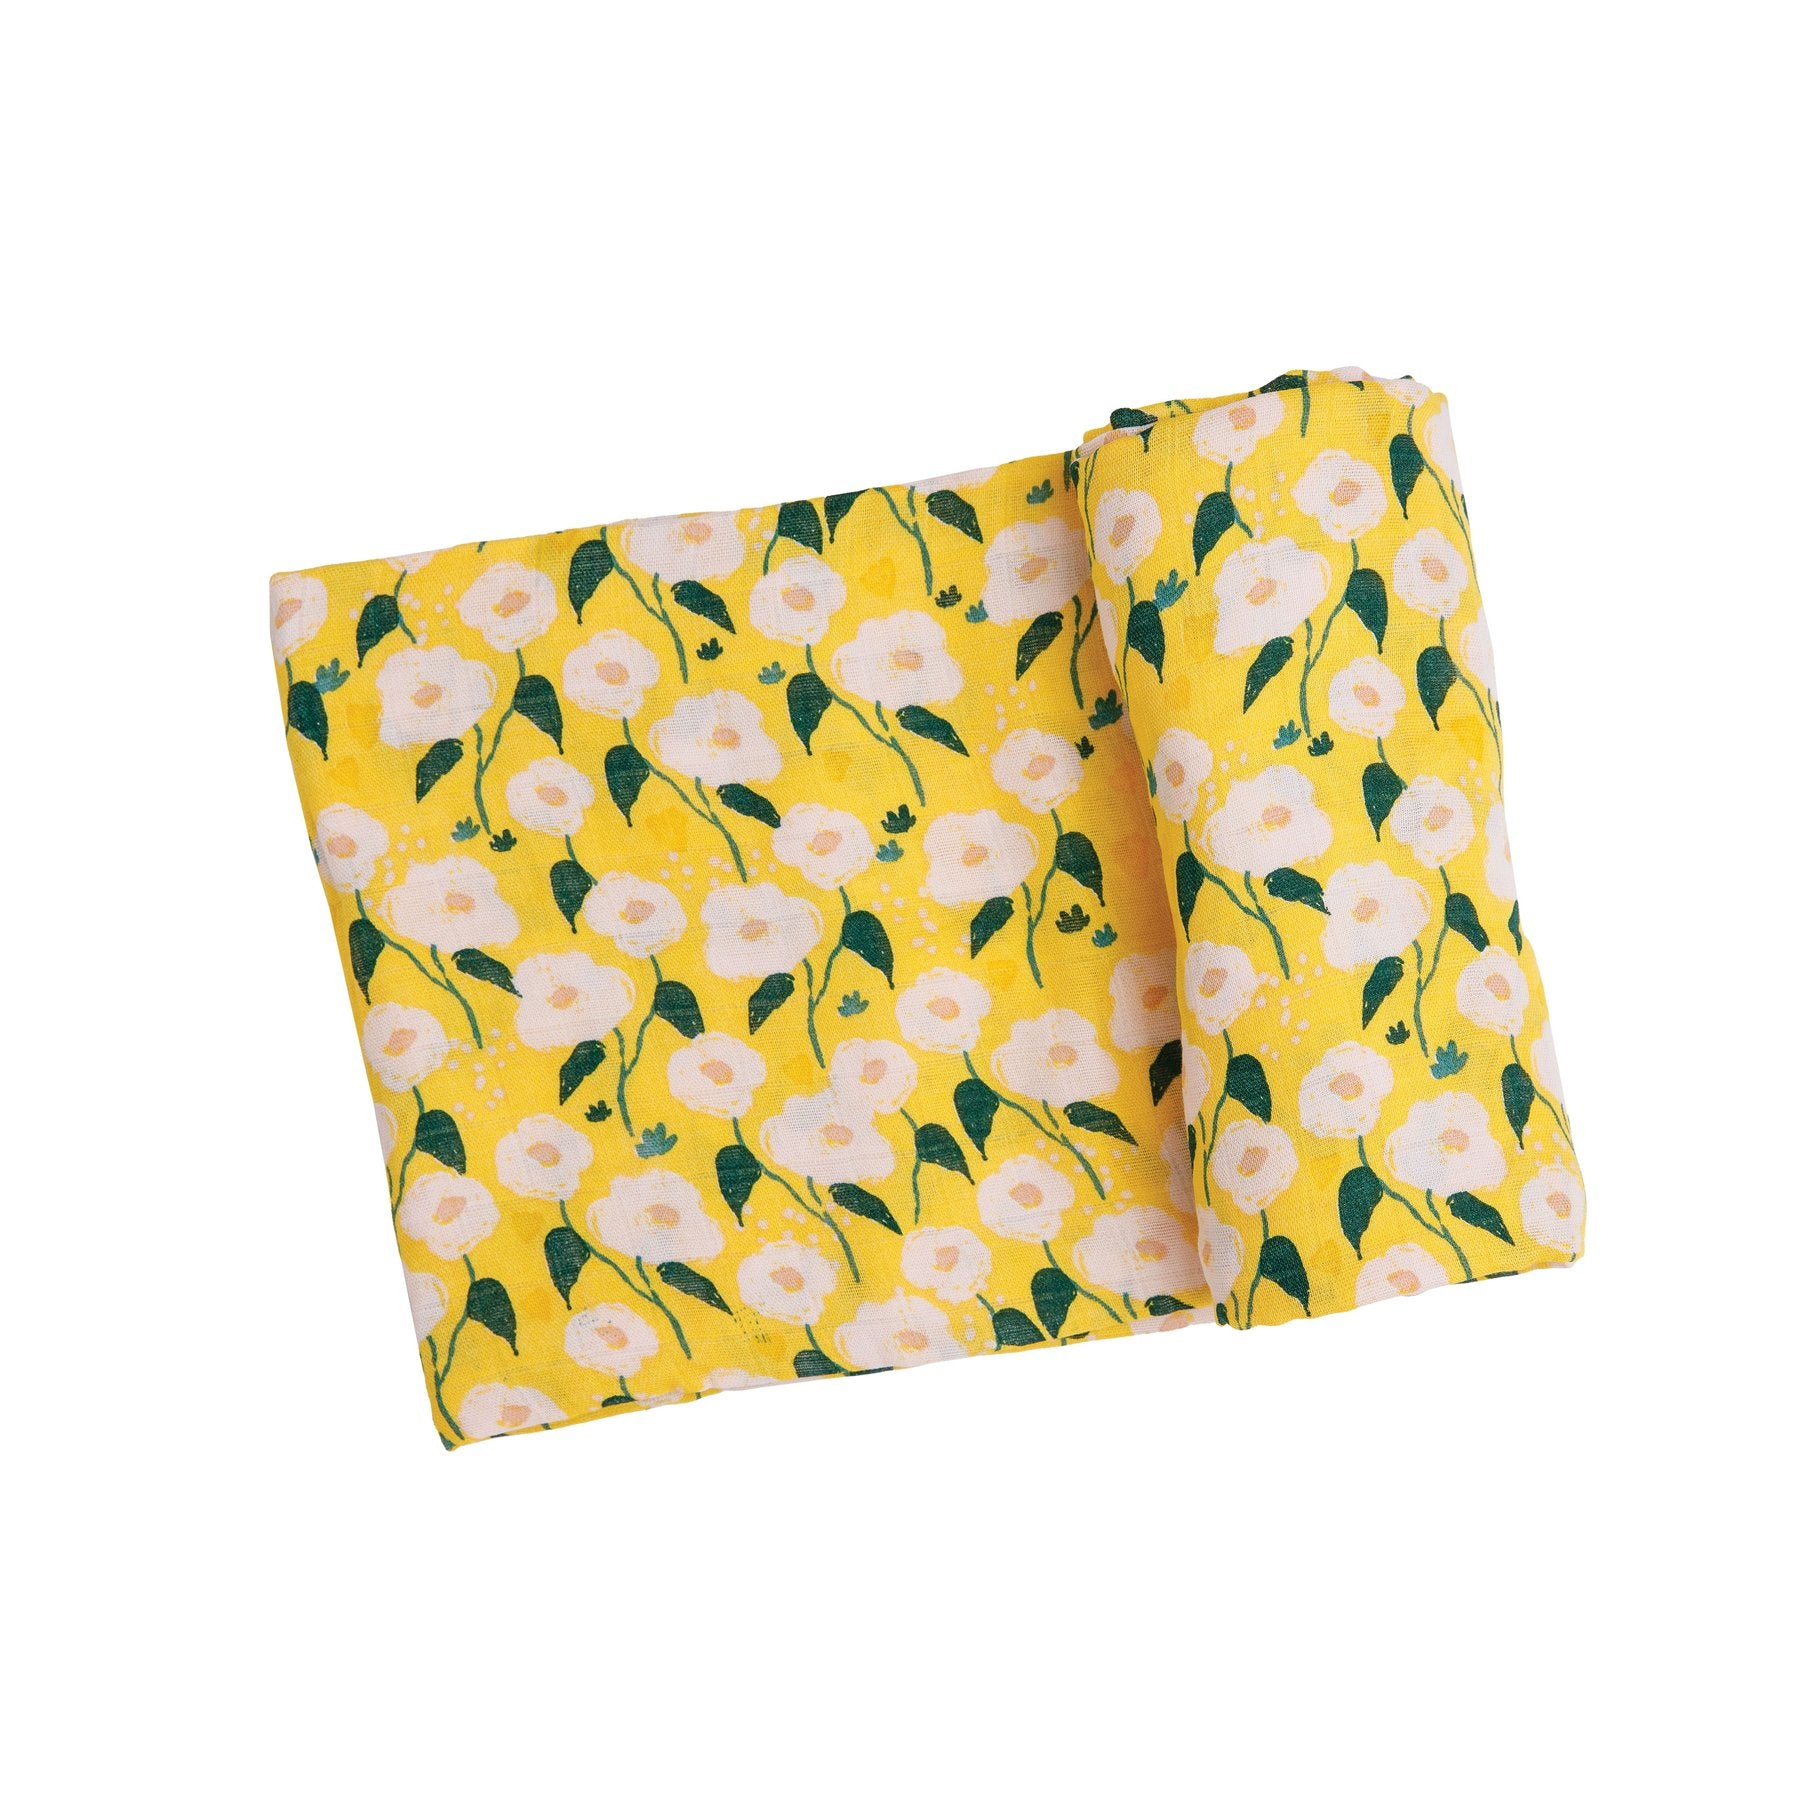 YELLOW FLORAL MUSLIN SWADDLE